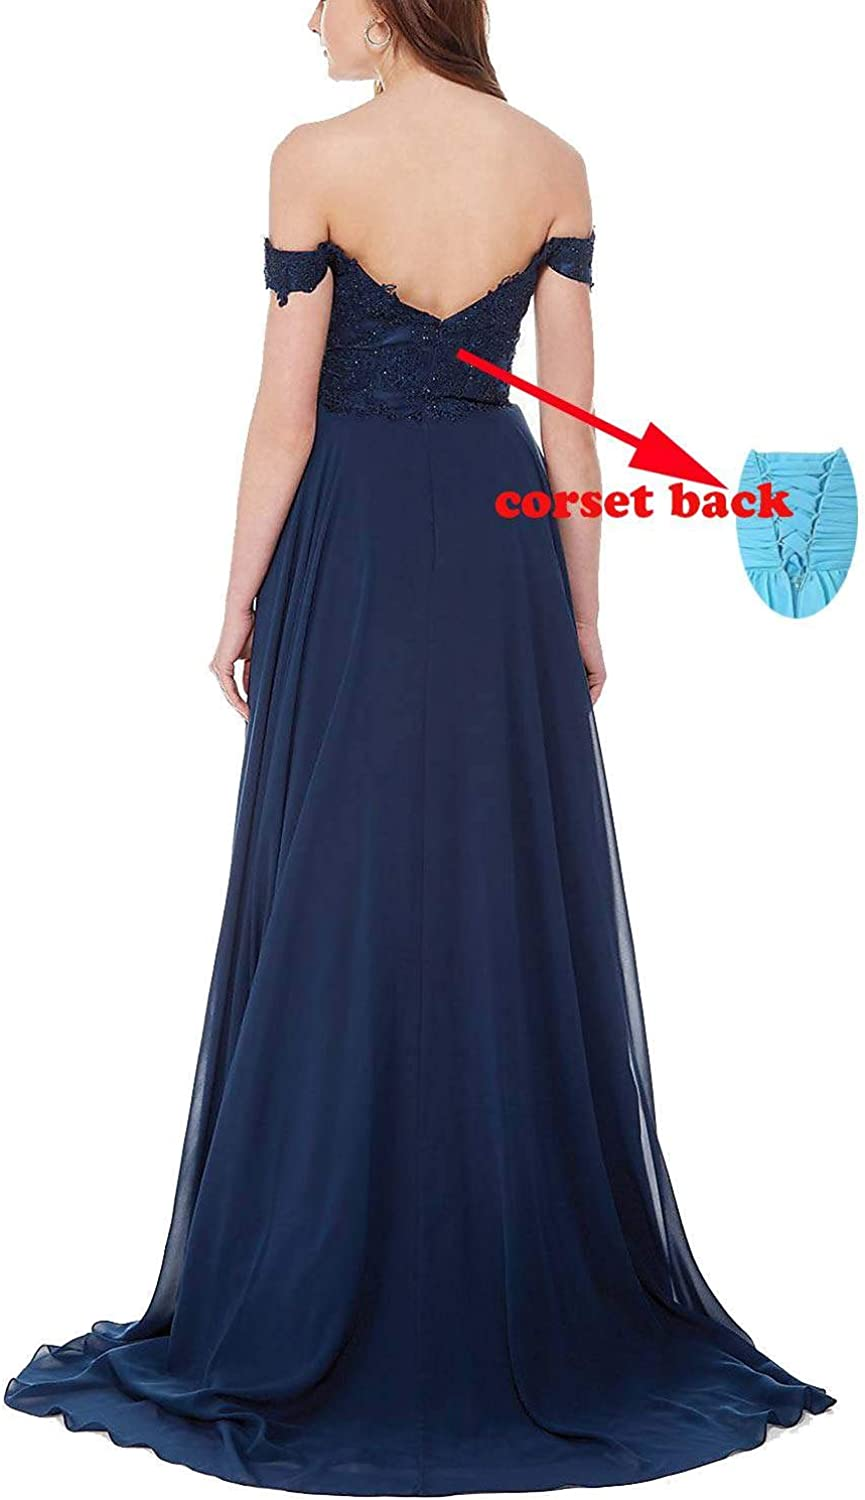 Lovely Romana Womens Off The Shoulder Chiffon Ball Gown Sweetheart Beaded Lace Formal Dress